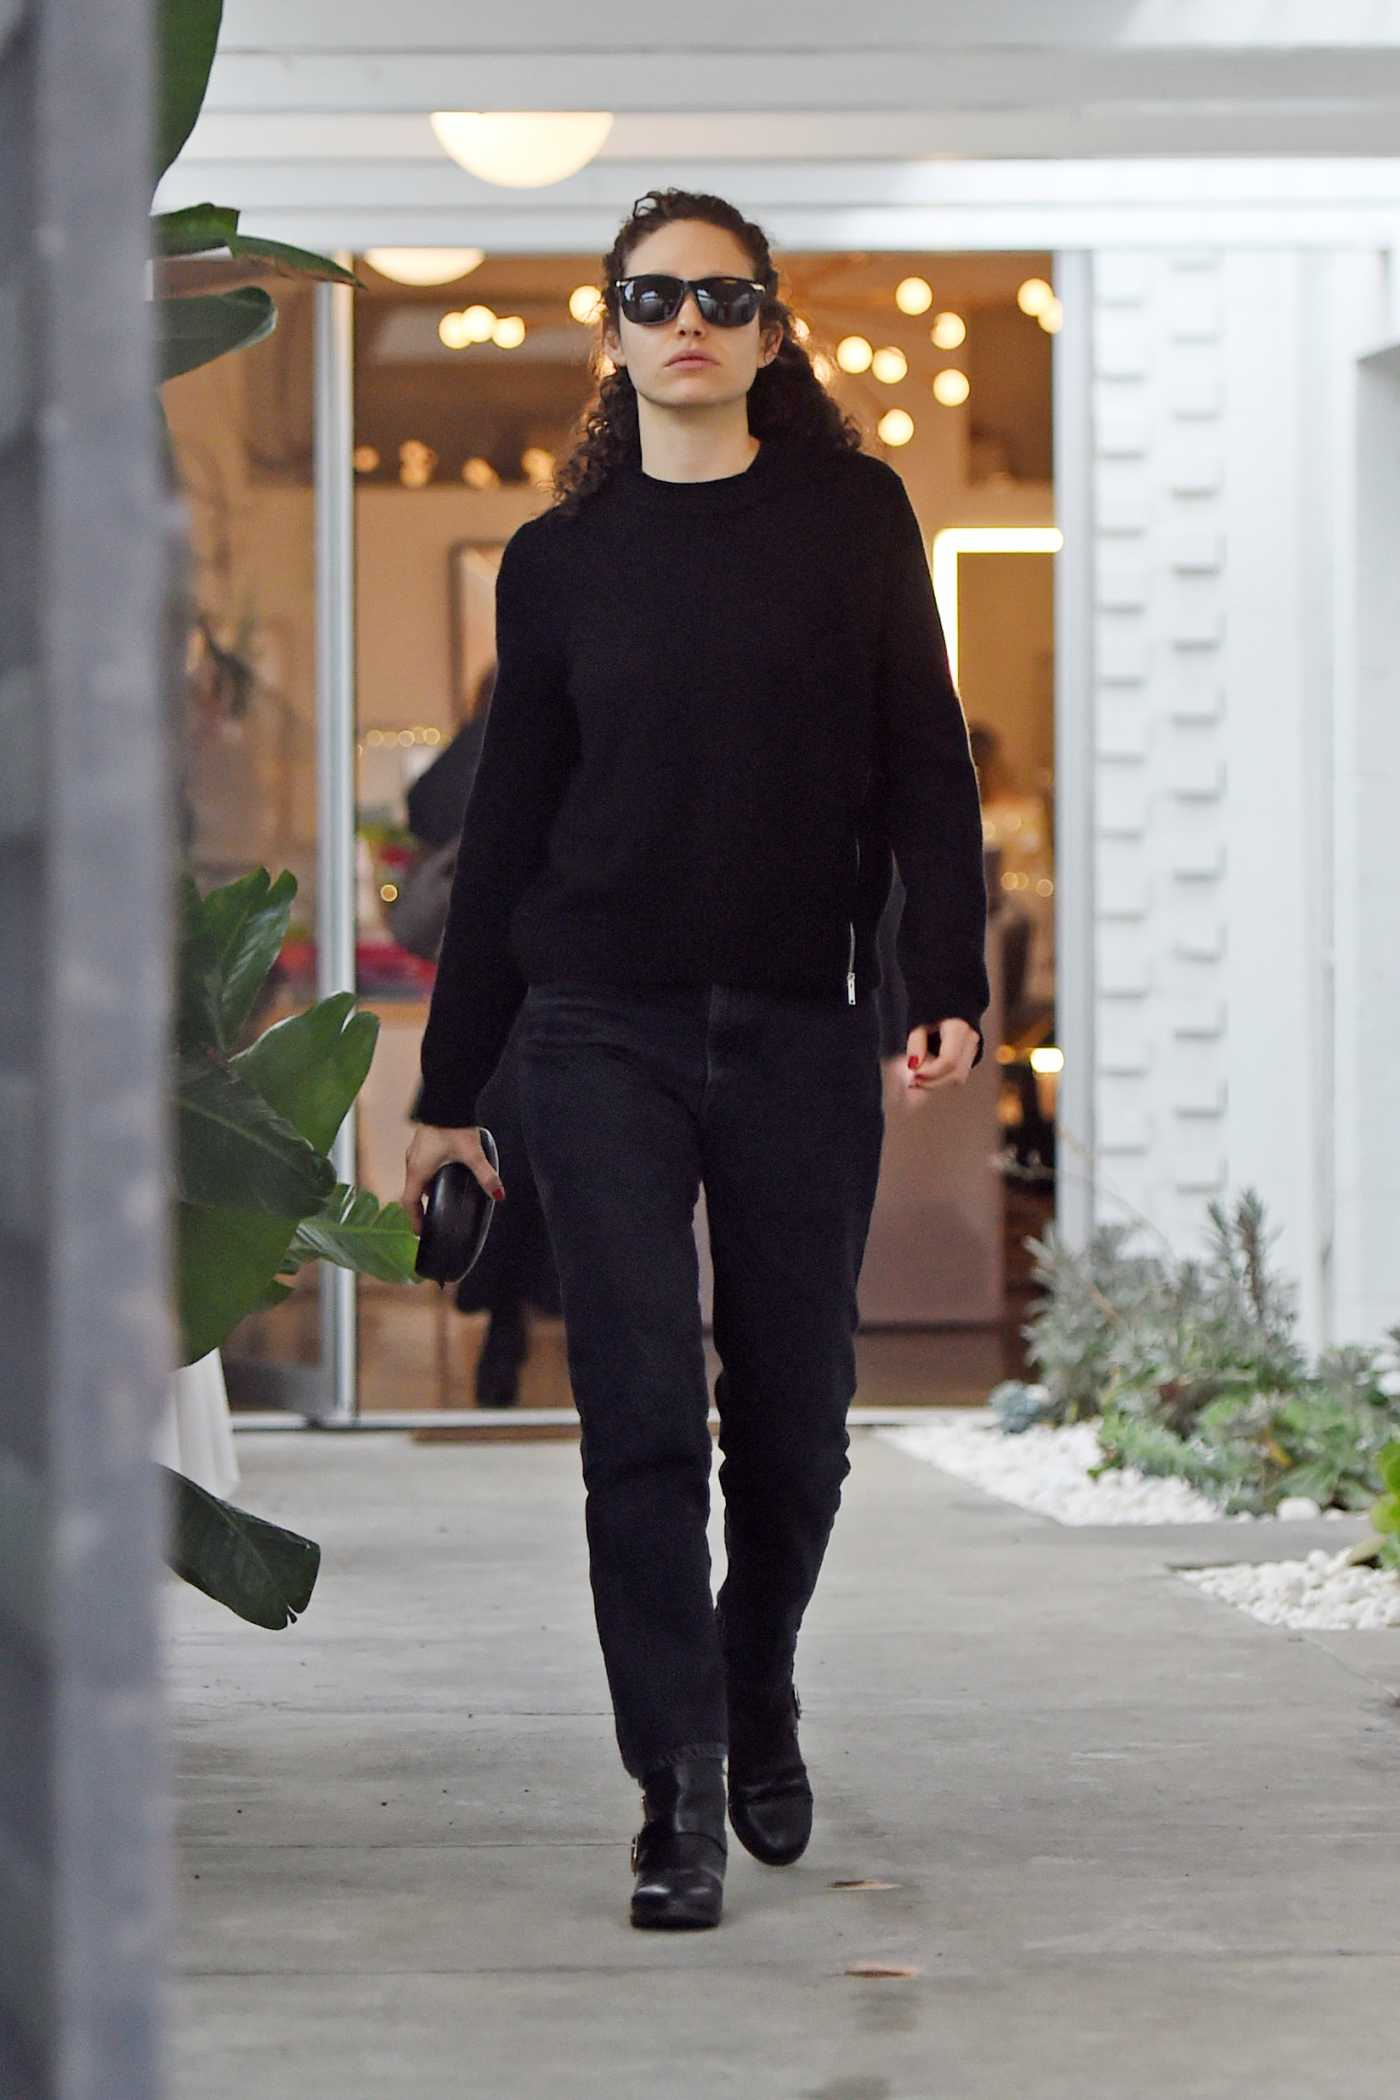 Emmy Rossum in a Black Sweater Does Some Holiday Shopping in Beverly Hills 12/14/2019